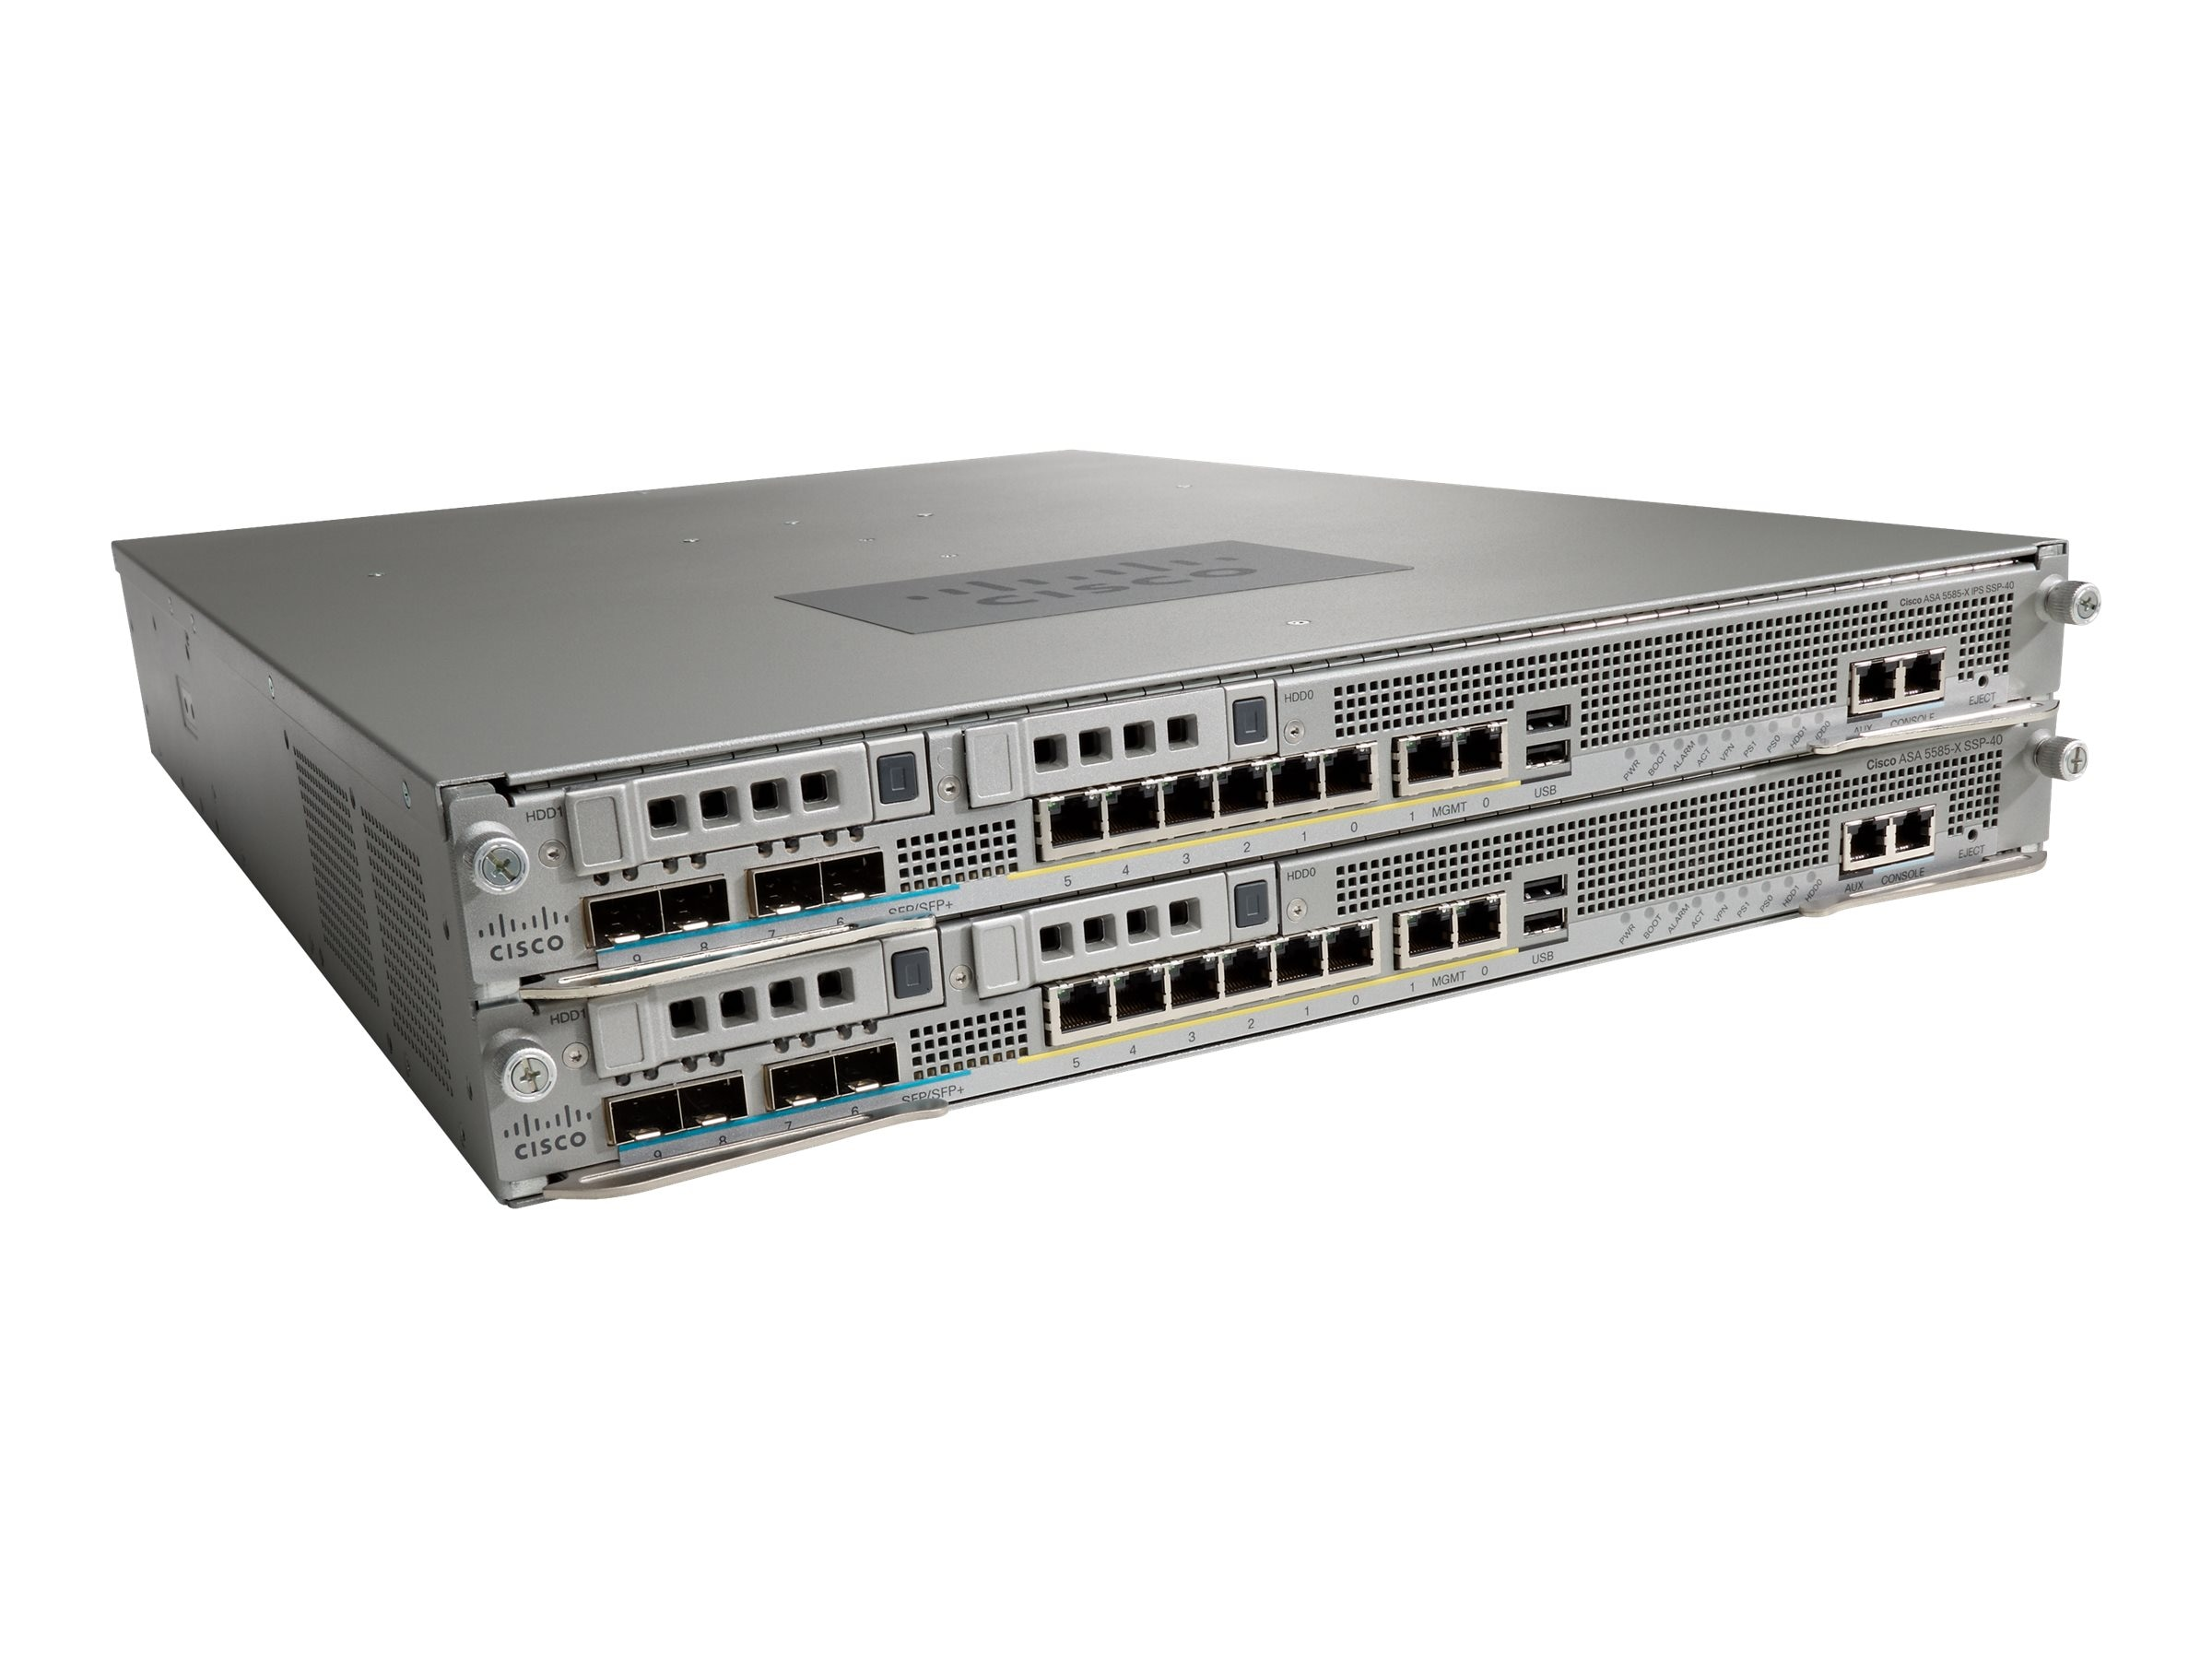 Cisco ASA5585-S10F10-K8 Image 1